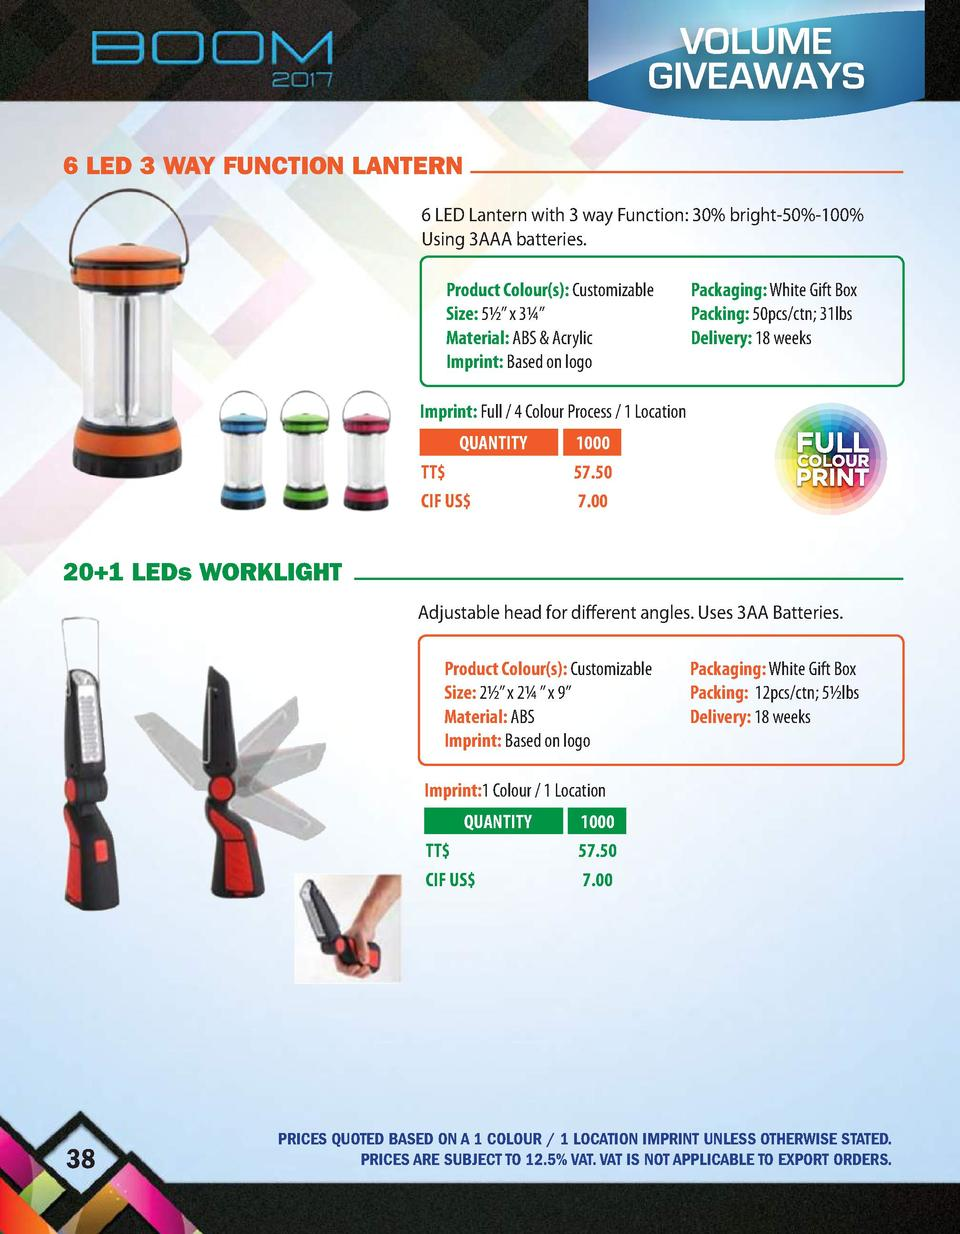 VOLUME GIVEAWAYS 6 LED 3 WAY FUNCTION LANTERN 6 LED Lantern with 3 way Function  30  bright-50 -100  Using 3AAA batteries....